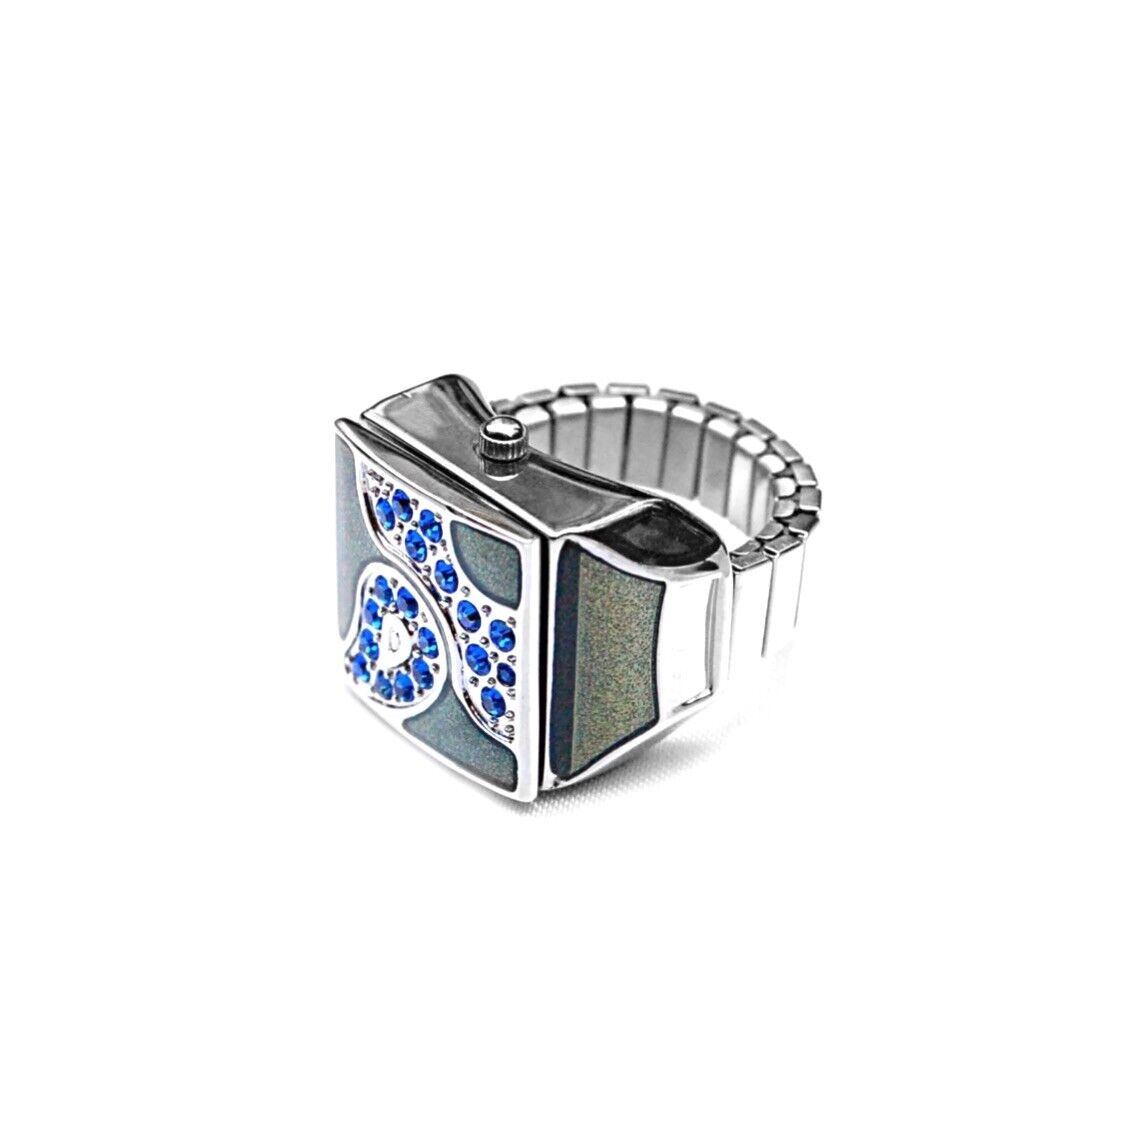 Midnight bluee Pave Cube Ring Watch